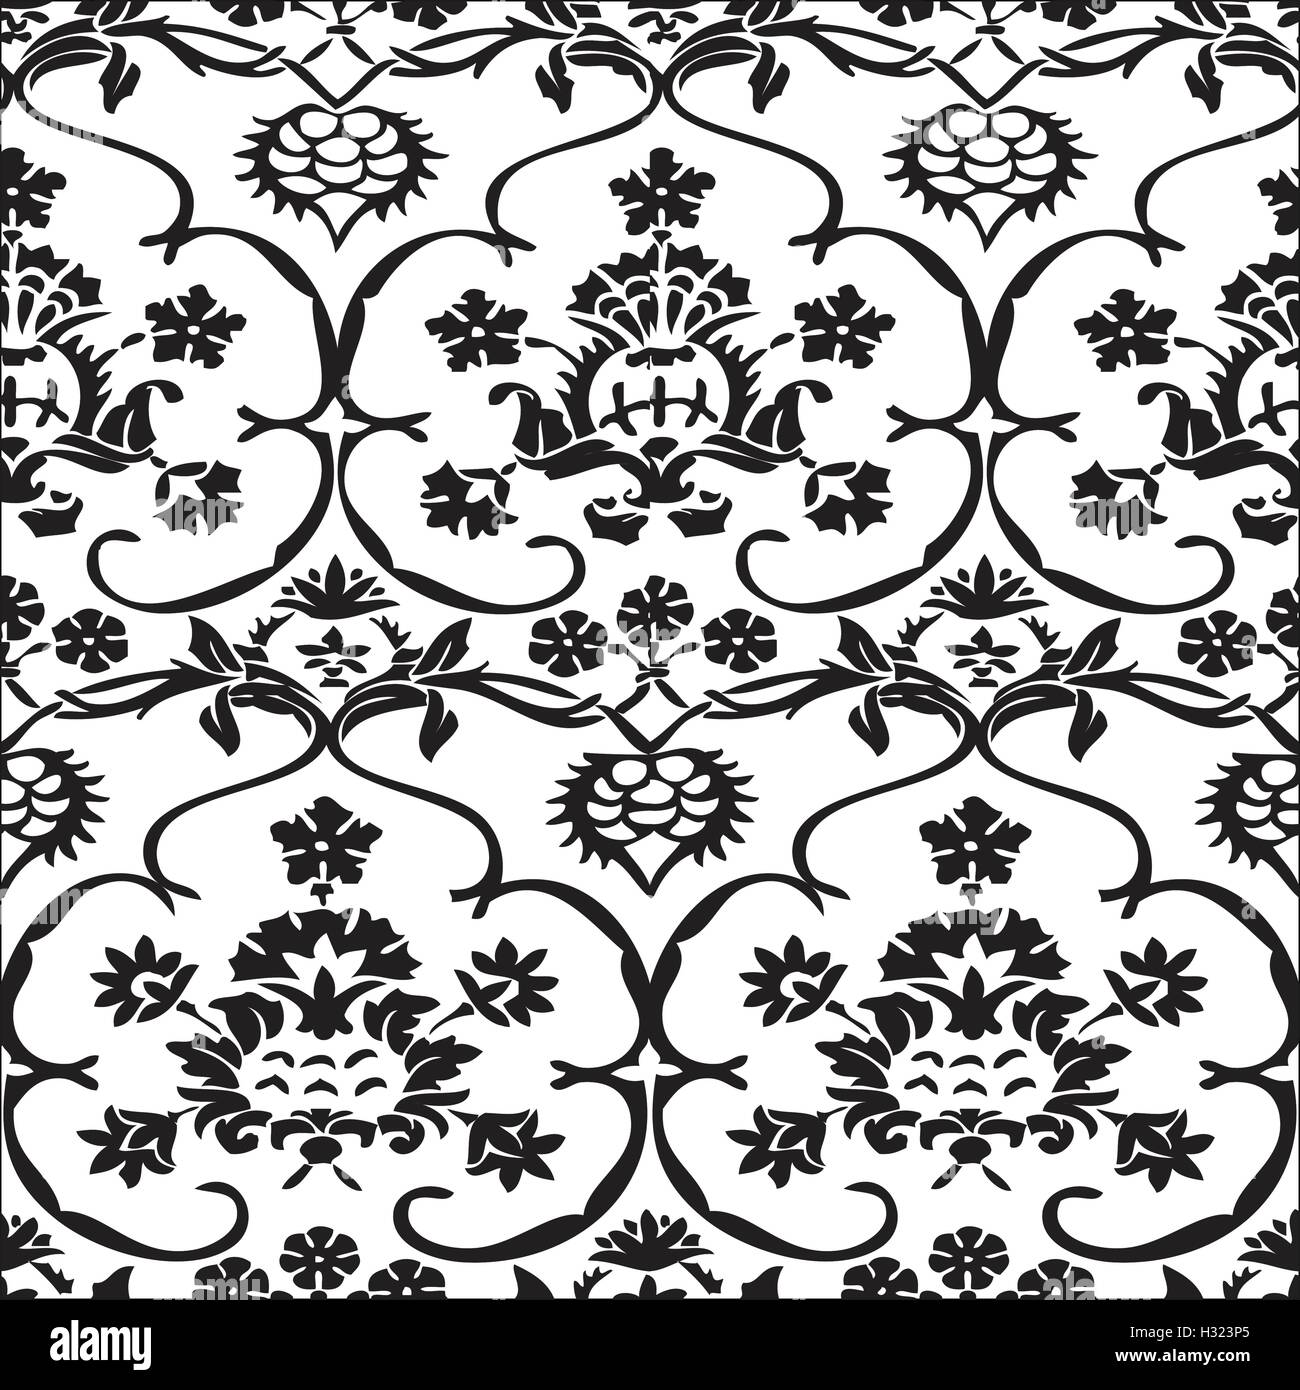 Vector Seamless Floral Pattern Vintage Background Black And White